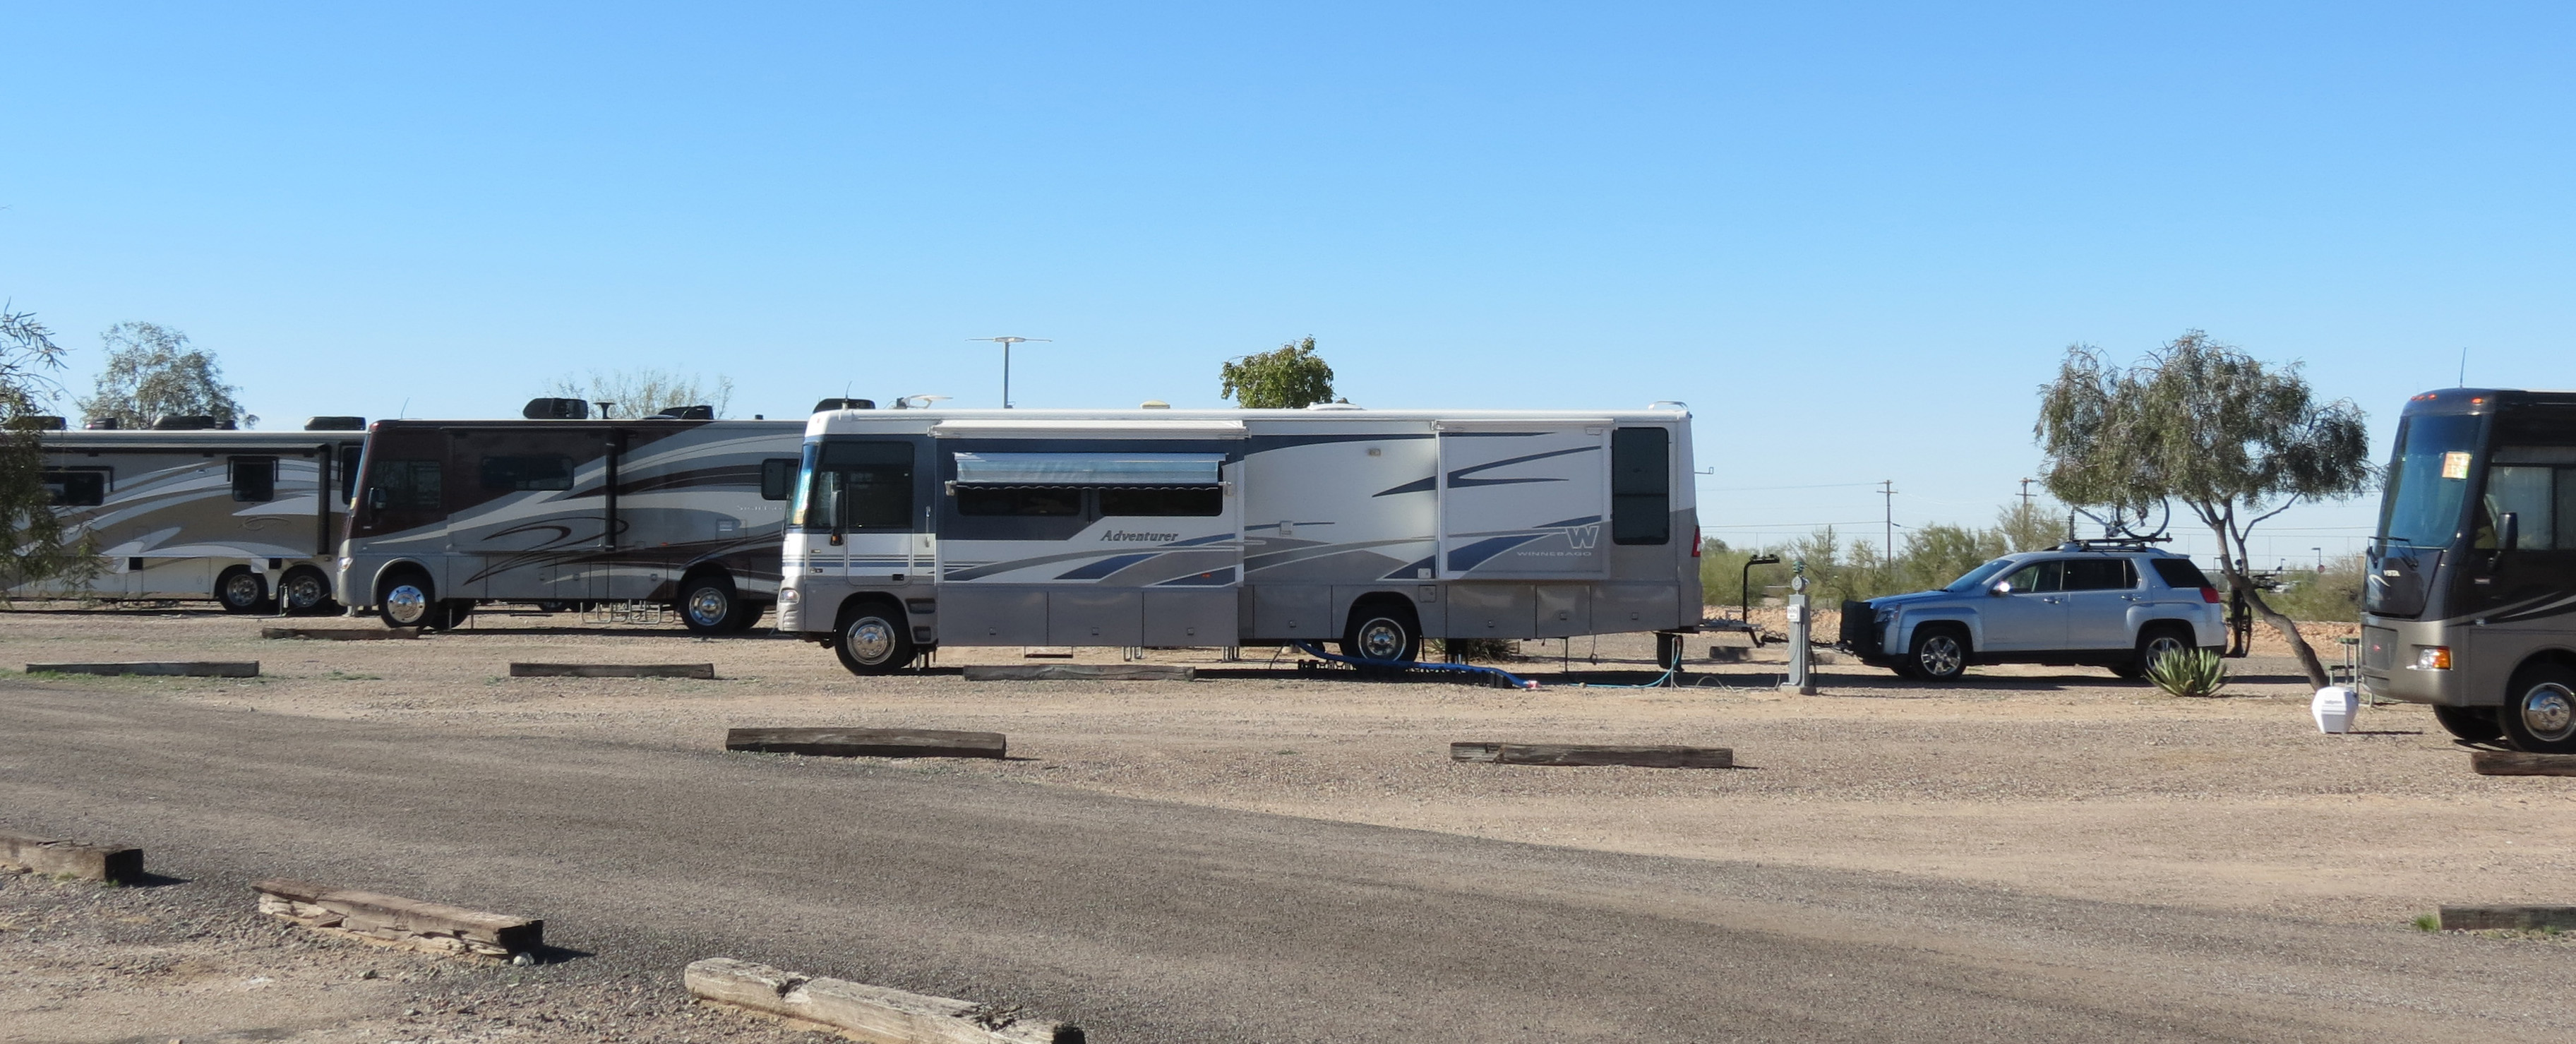 Gila bend arizona campgrounds with hookups